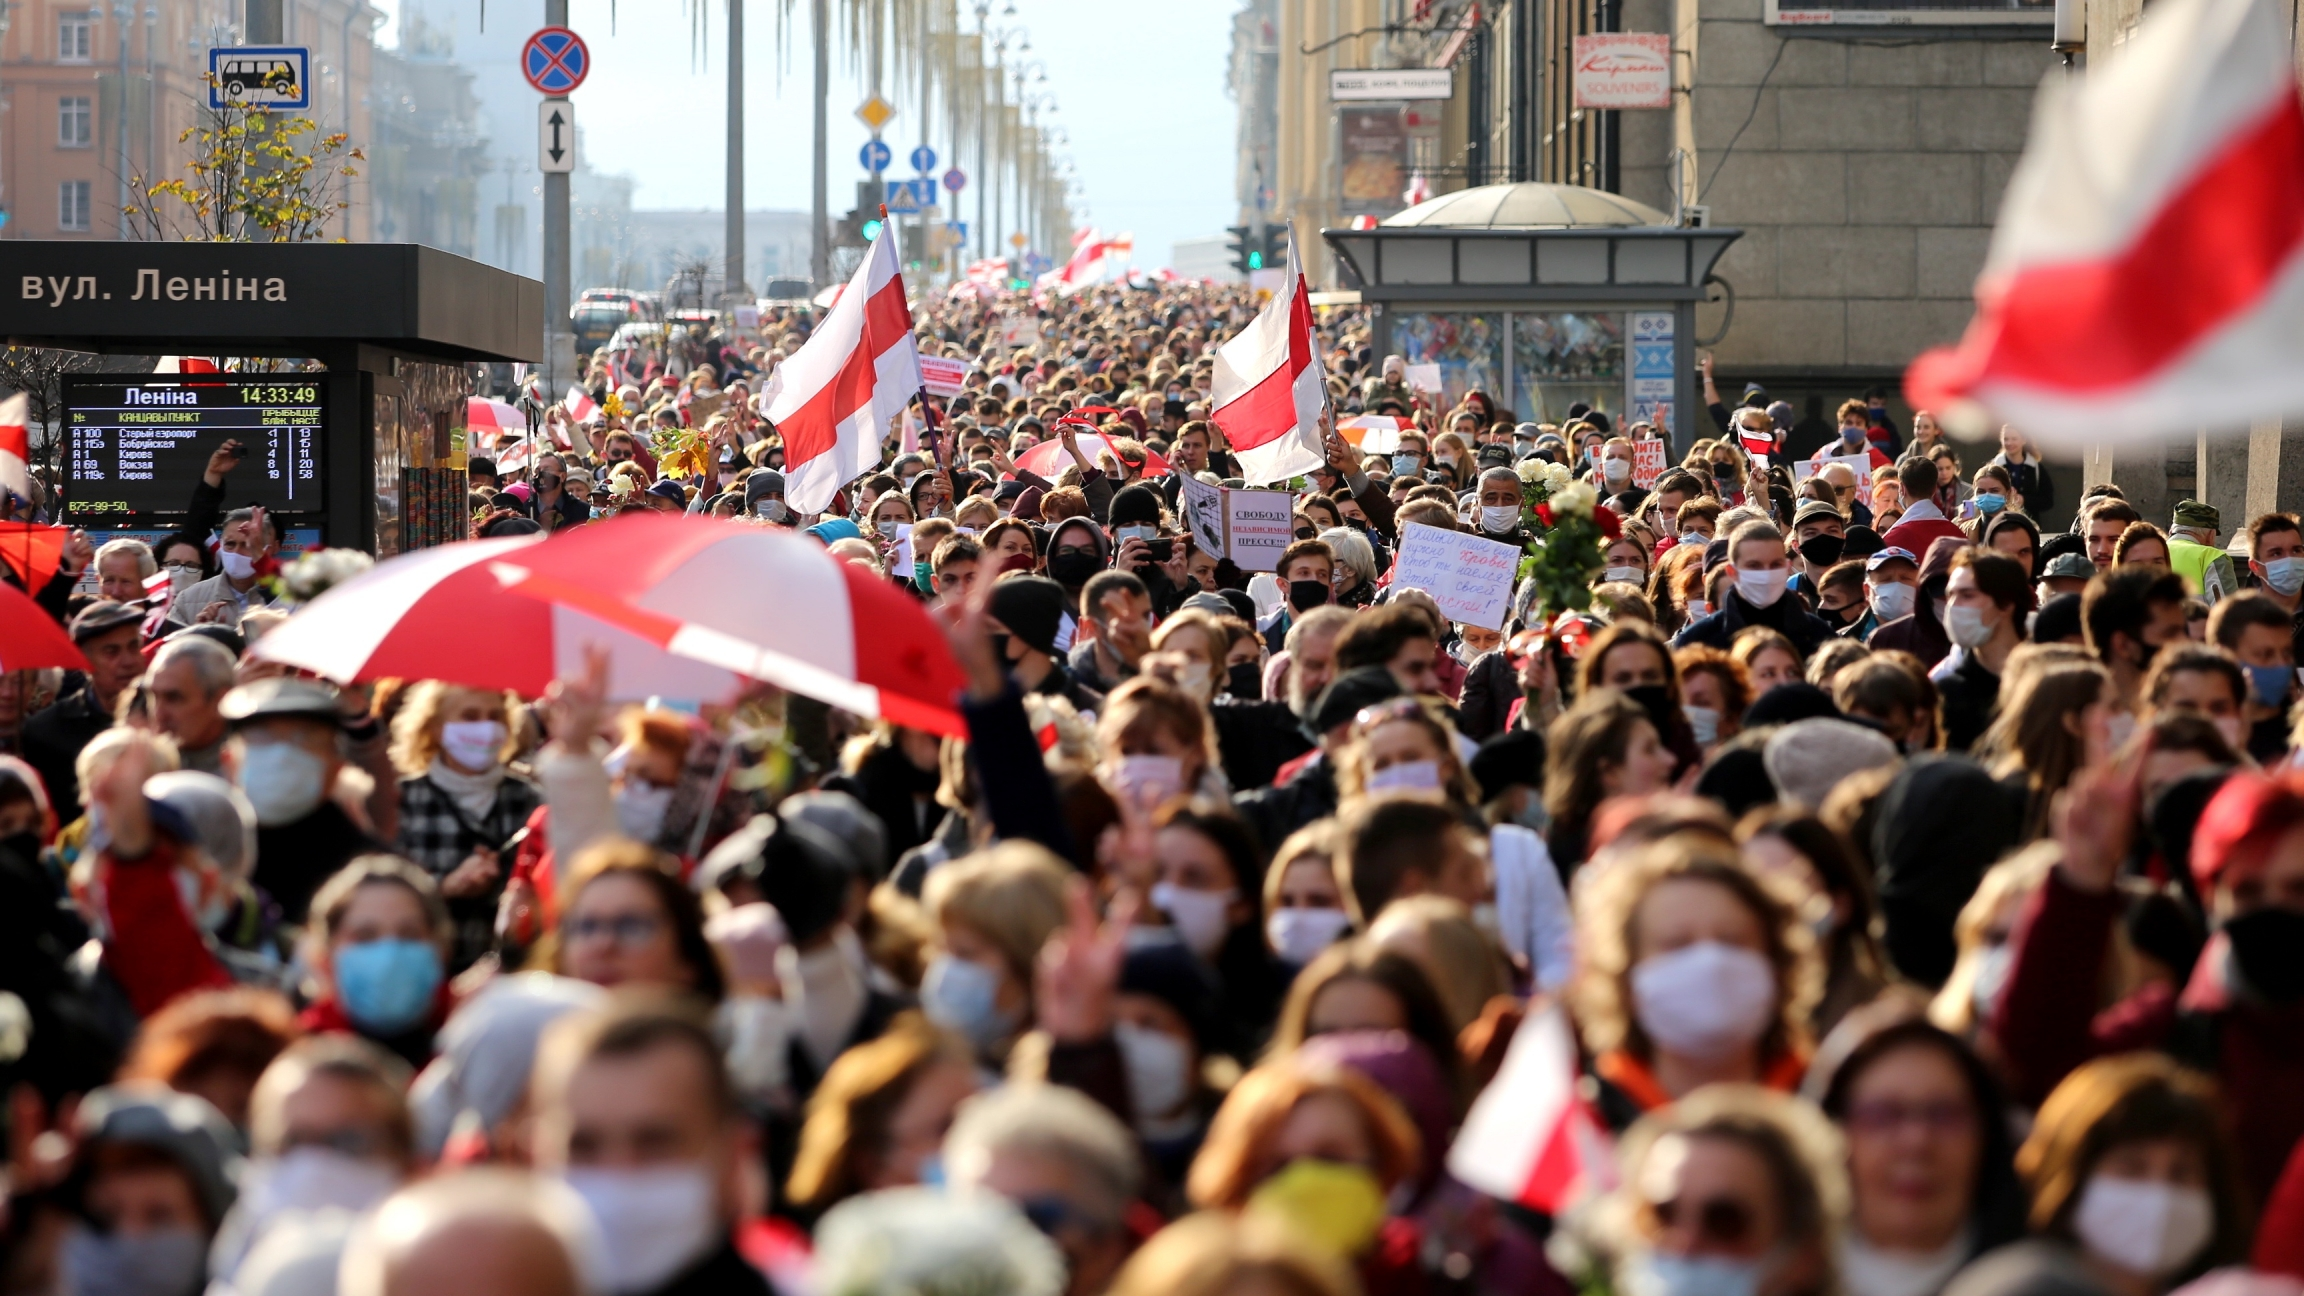 Mass of people wearing masks march with red and white umbrellas.